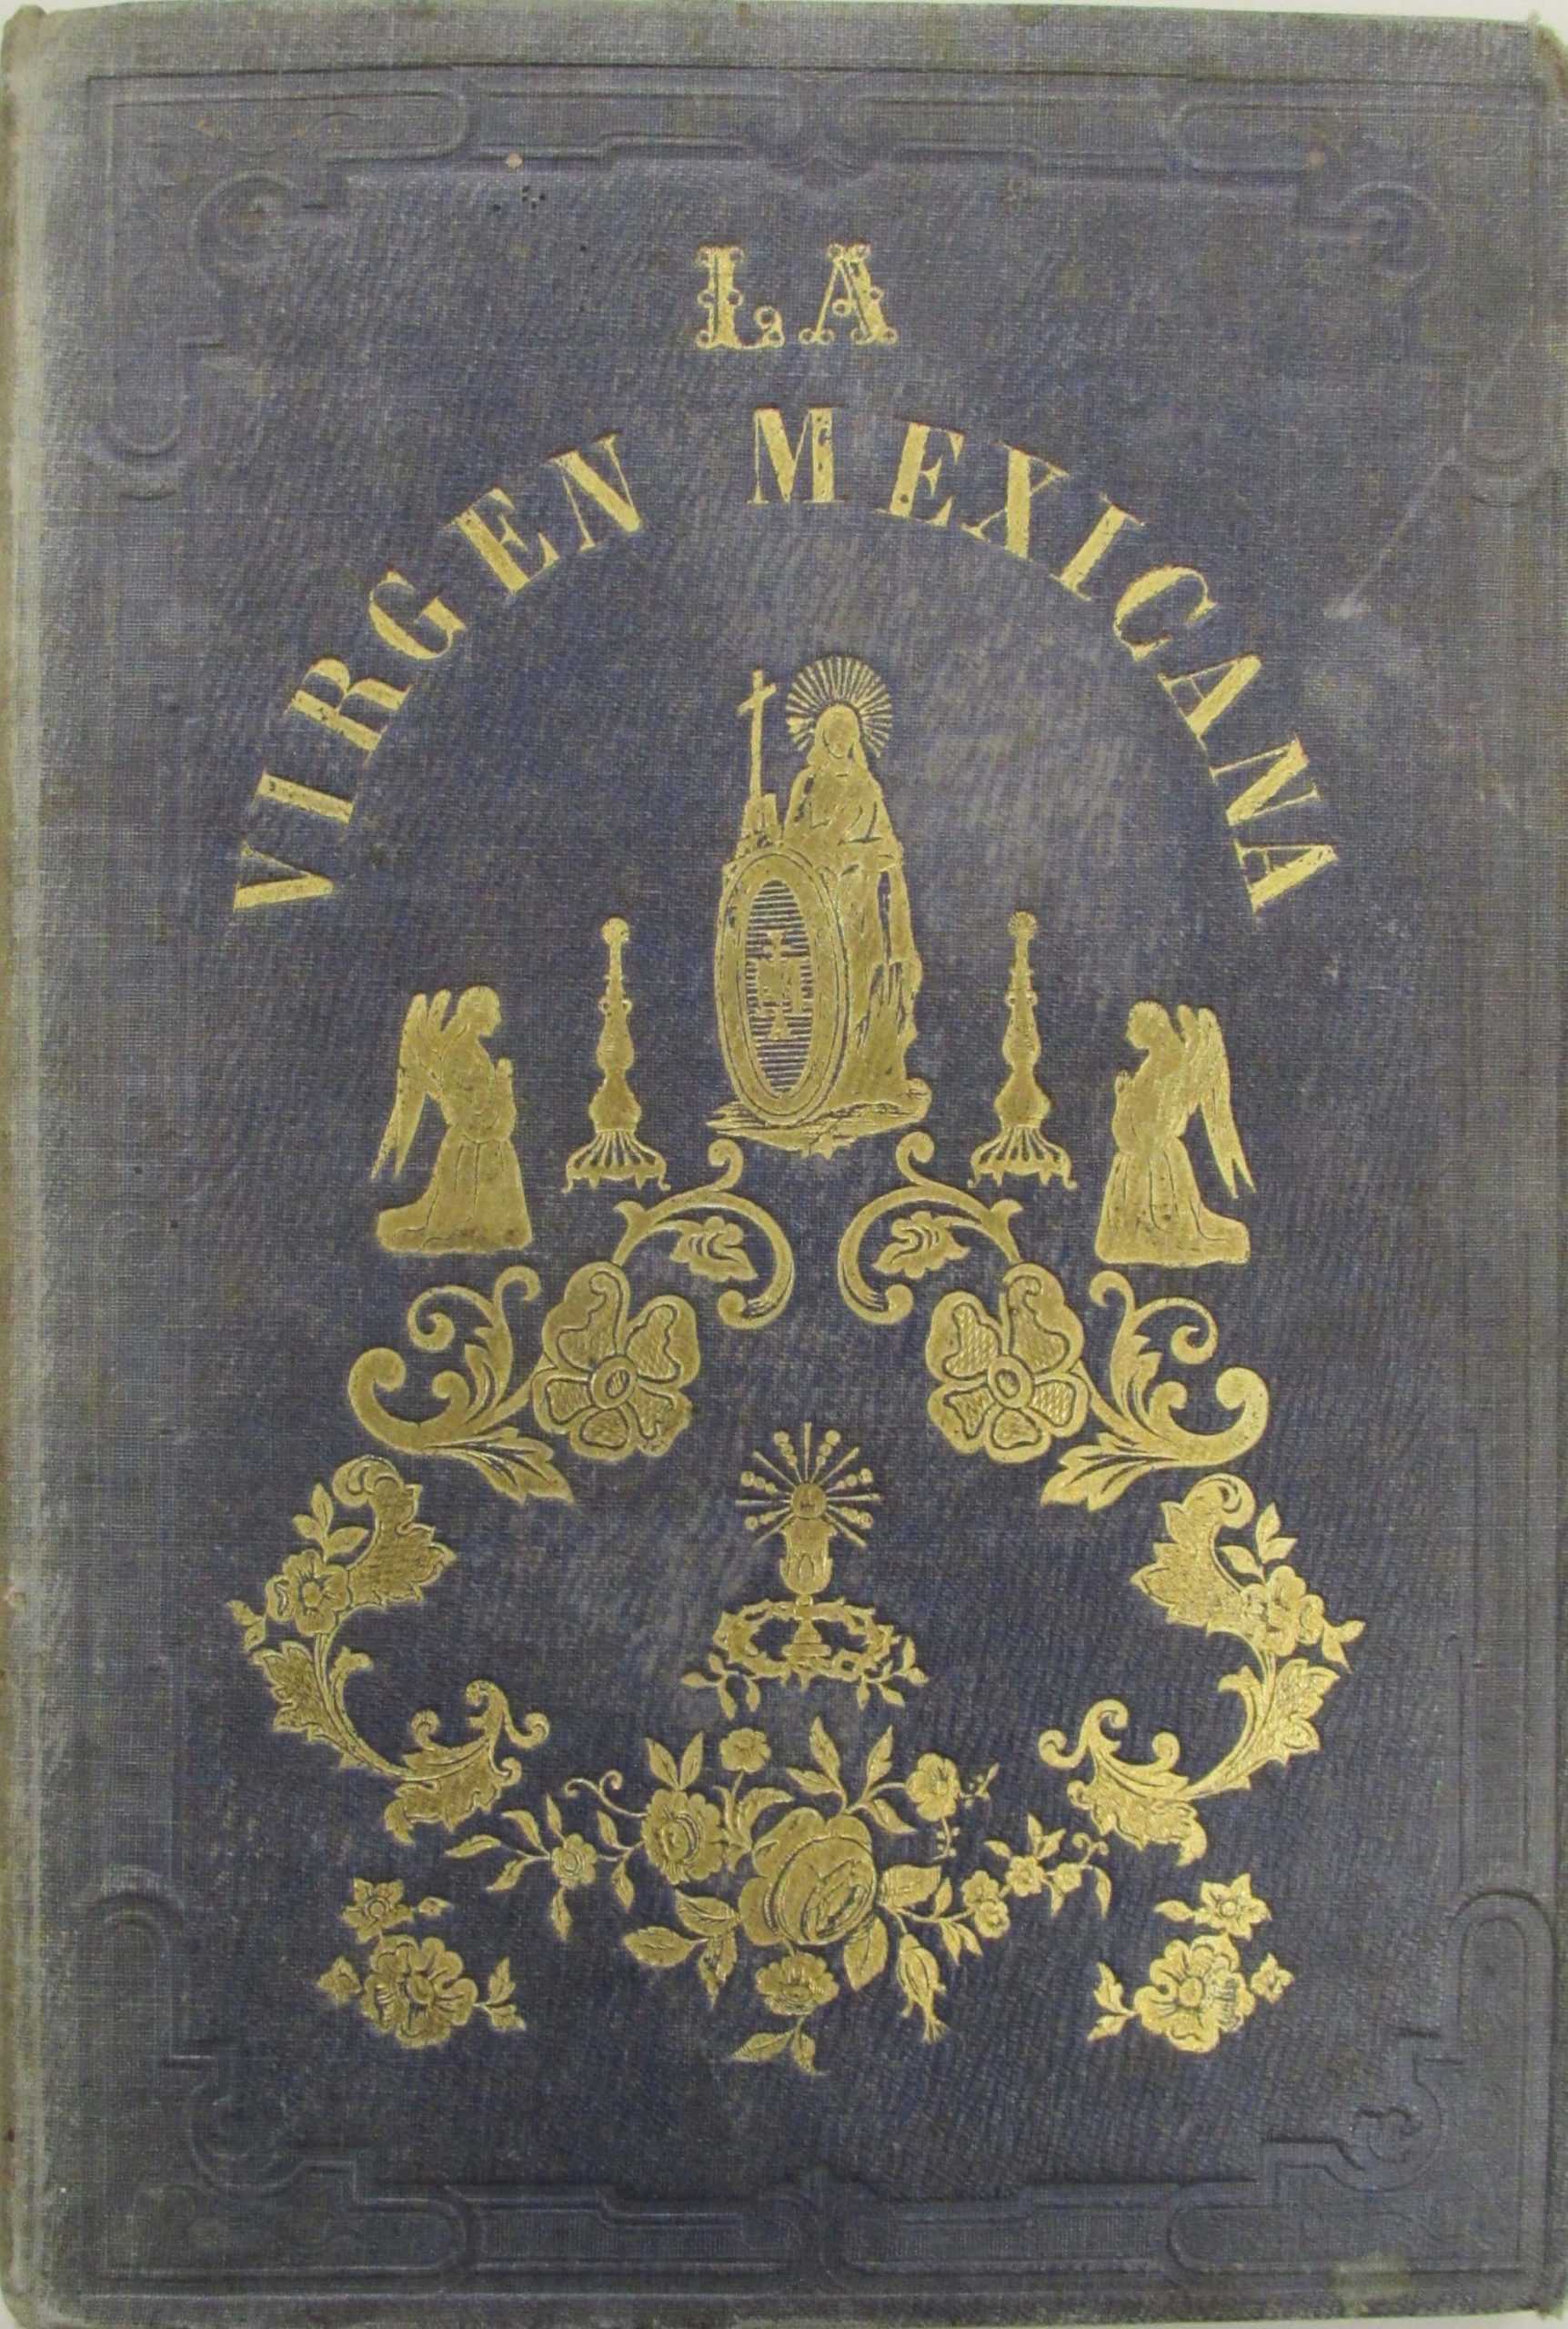 Book Cover that gives the title as La Virgen Mexicana with an image of Our Lady of Guadalupe with two angels and other decorative elements.